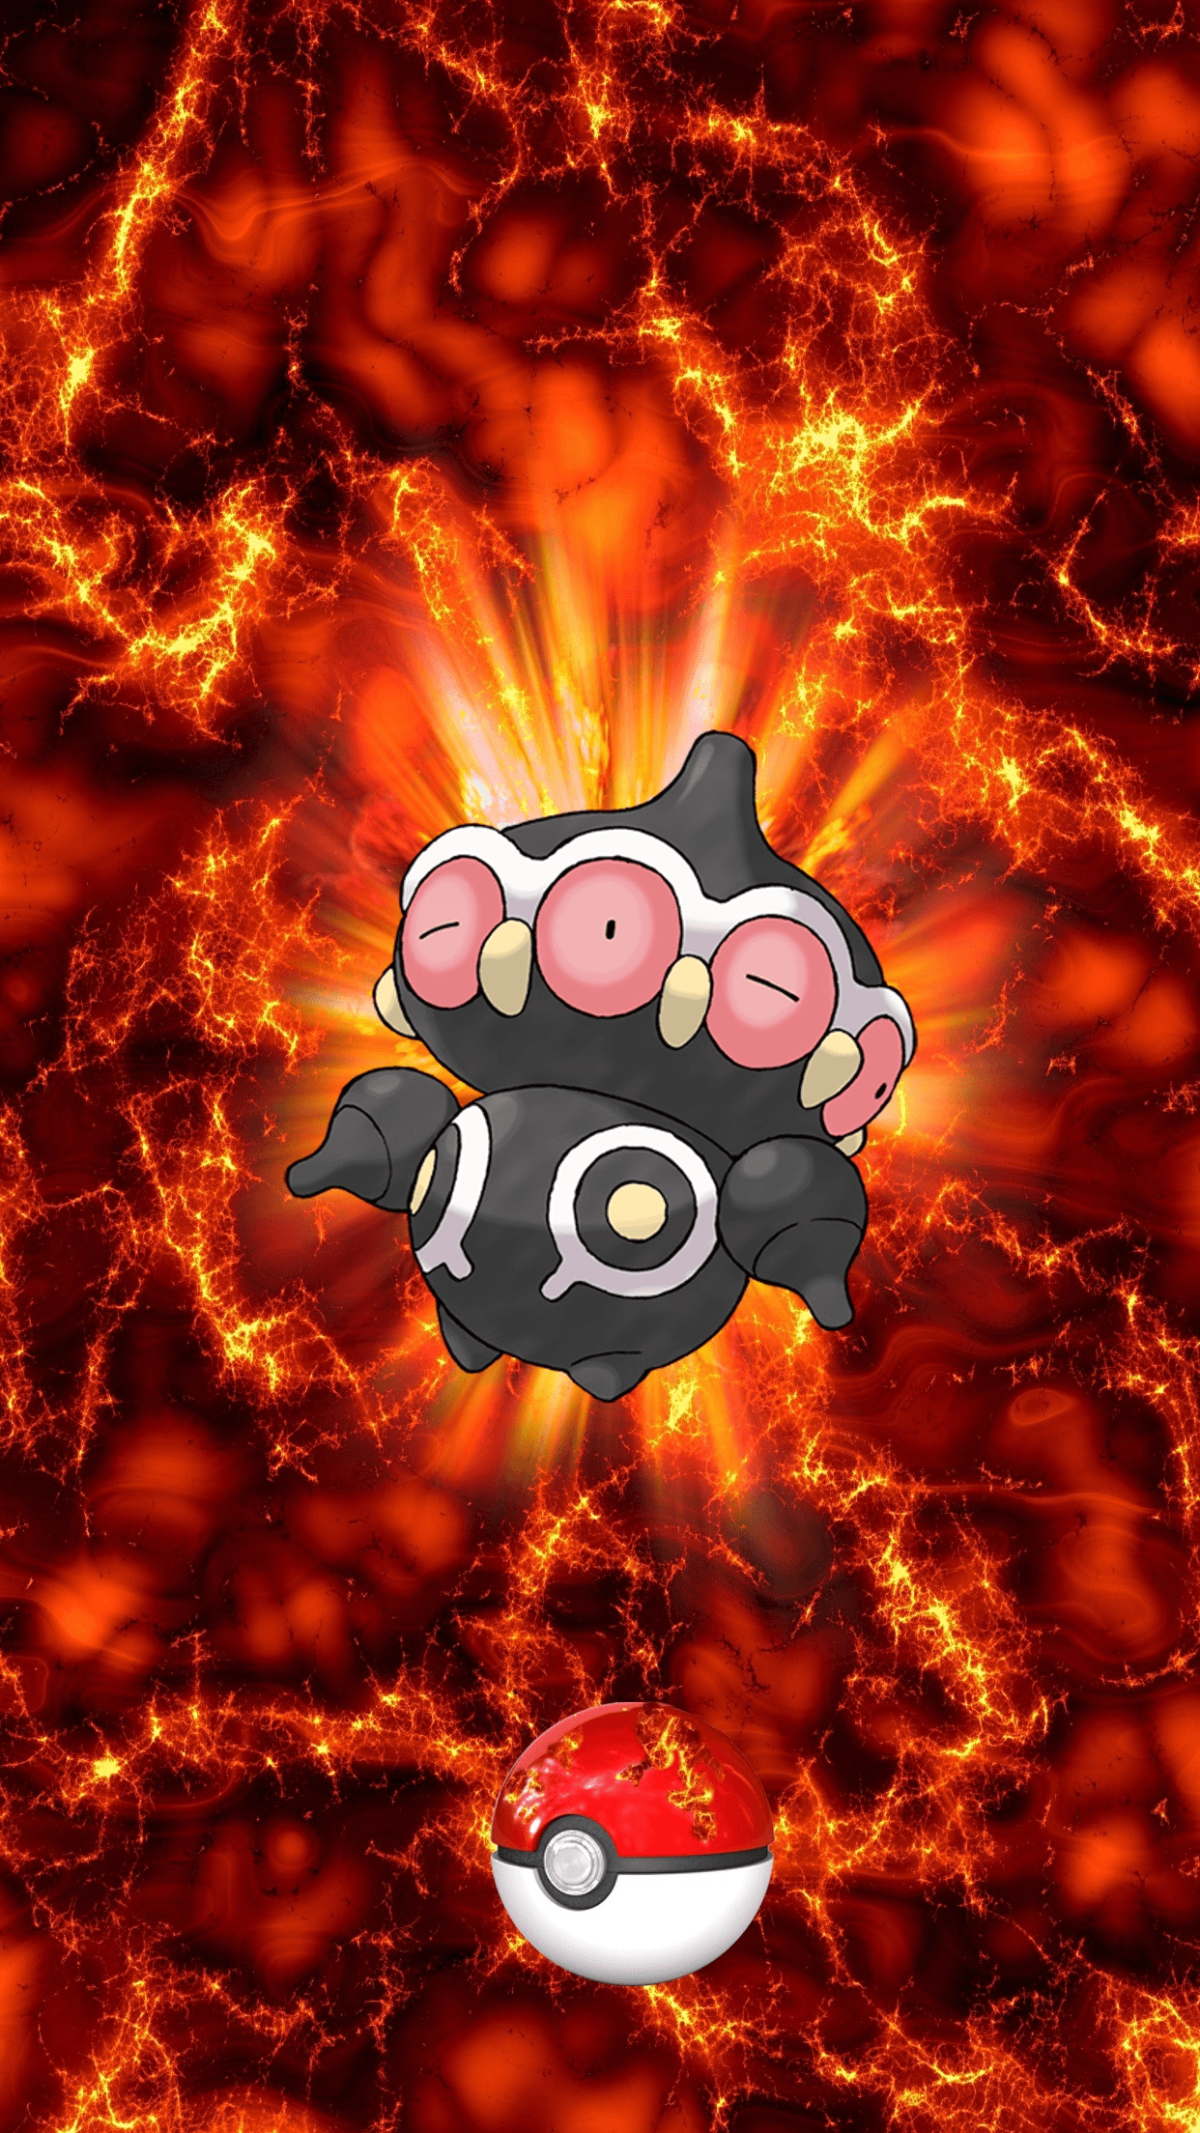 344 Fire Pokeball Claydol Unknown Baltoy | Wallpaper